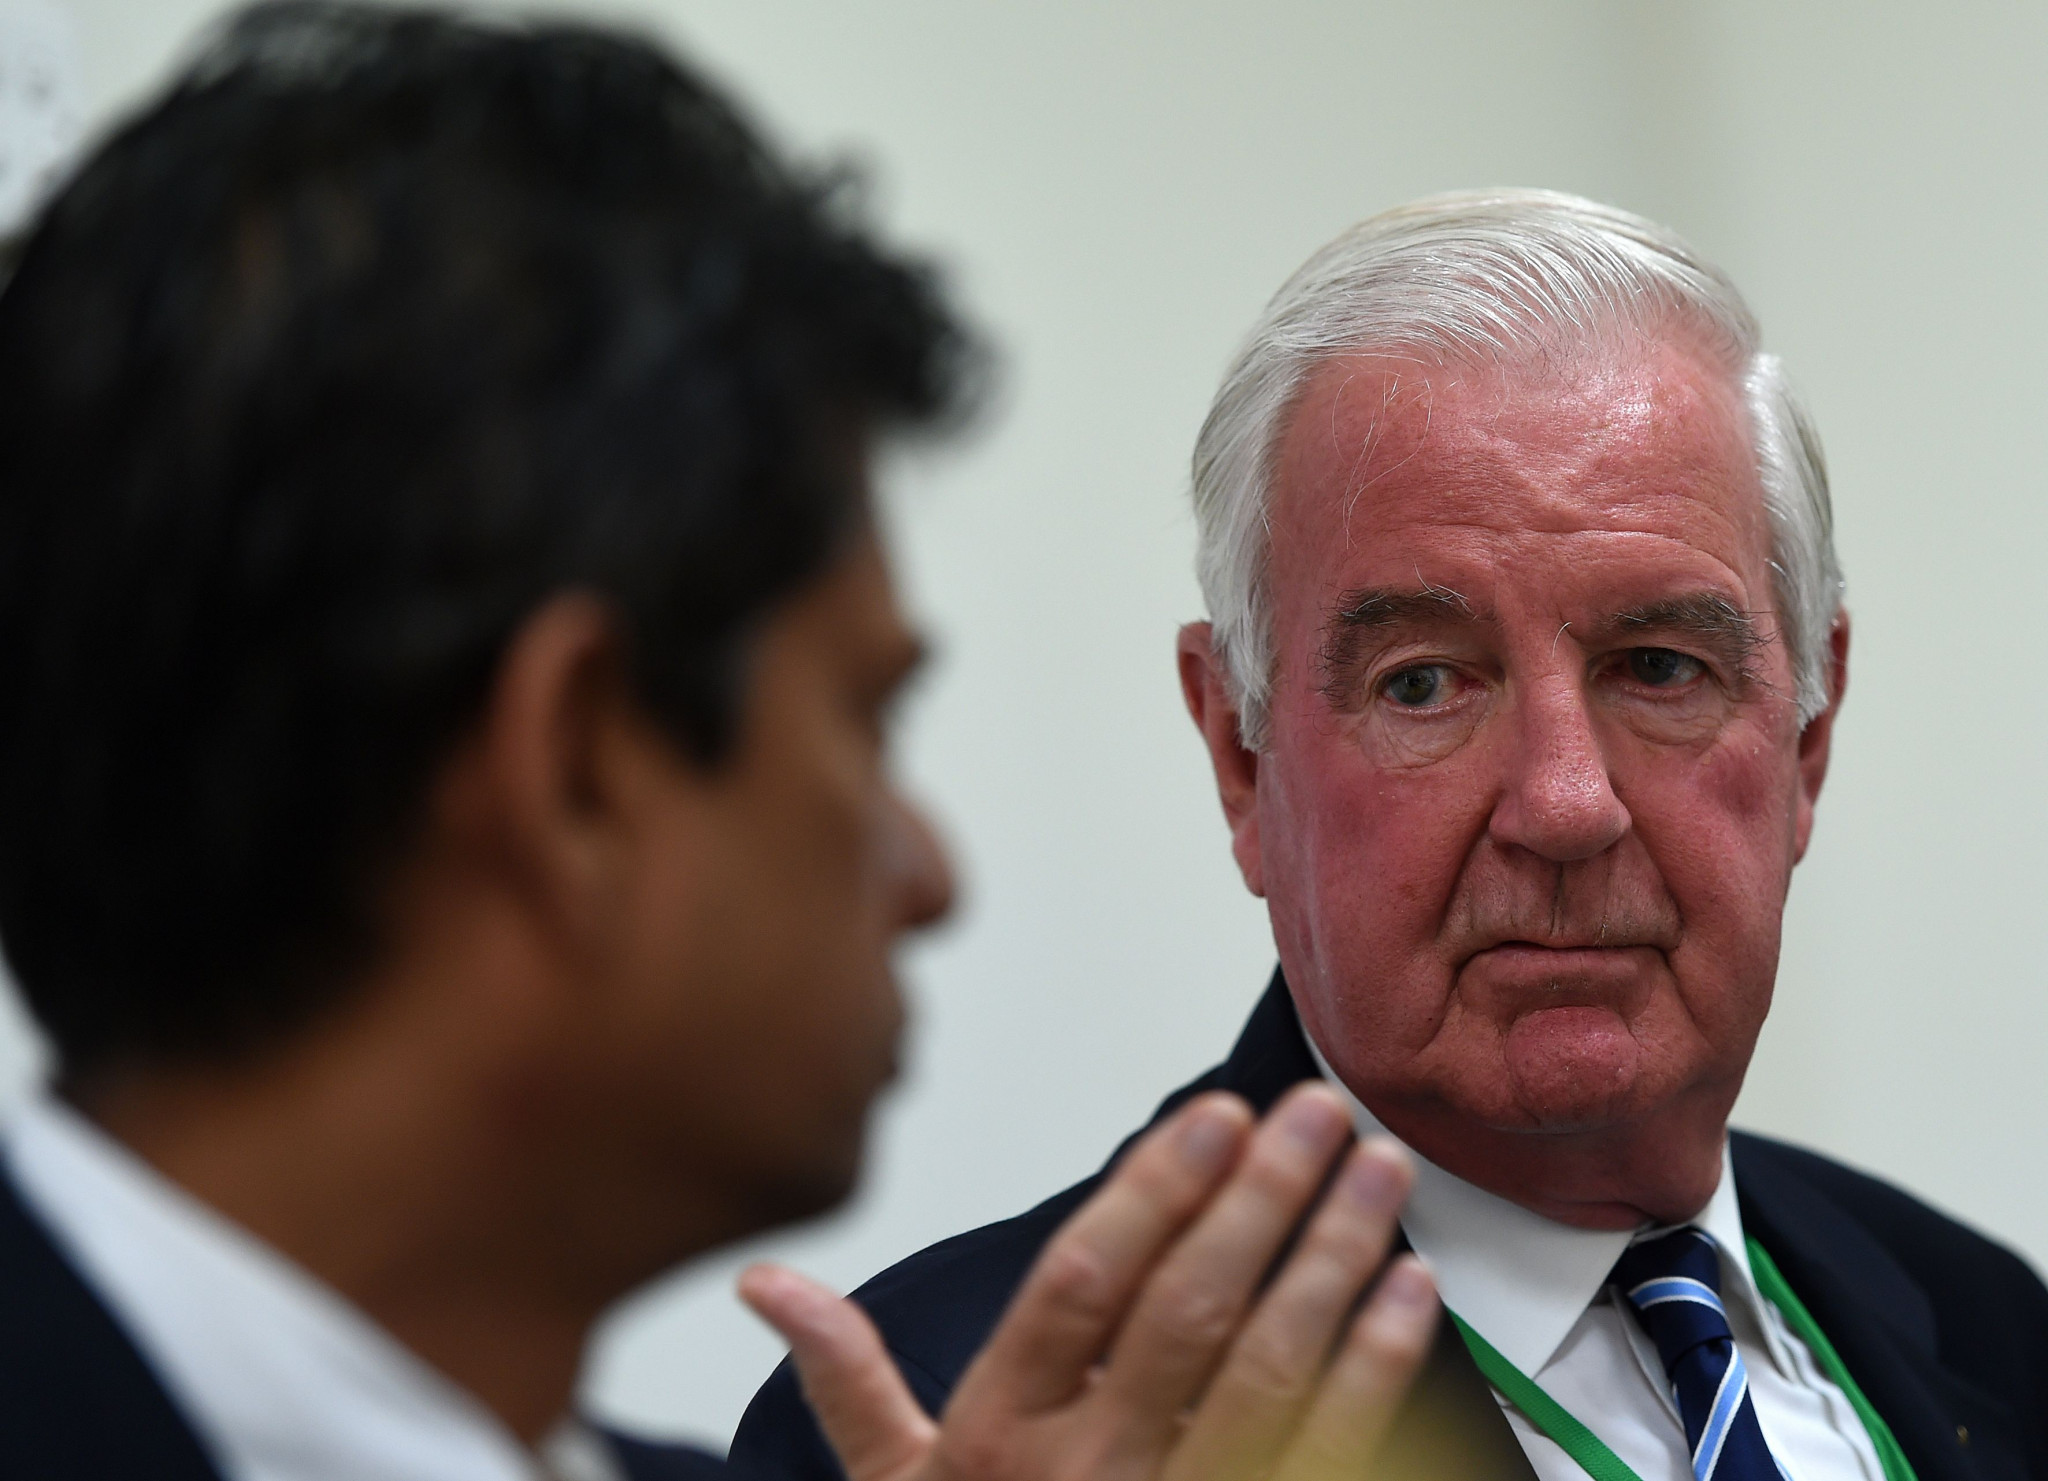 WADA President Sir Craig Reedie has defended the process to reinstate the Russian Anti-Doping Agency in the face of intense criticism from athletes and other anti-doping groups ©Getty Images